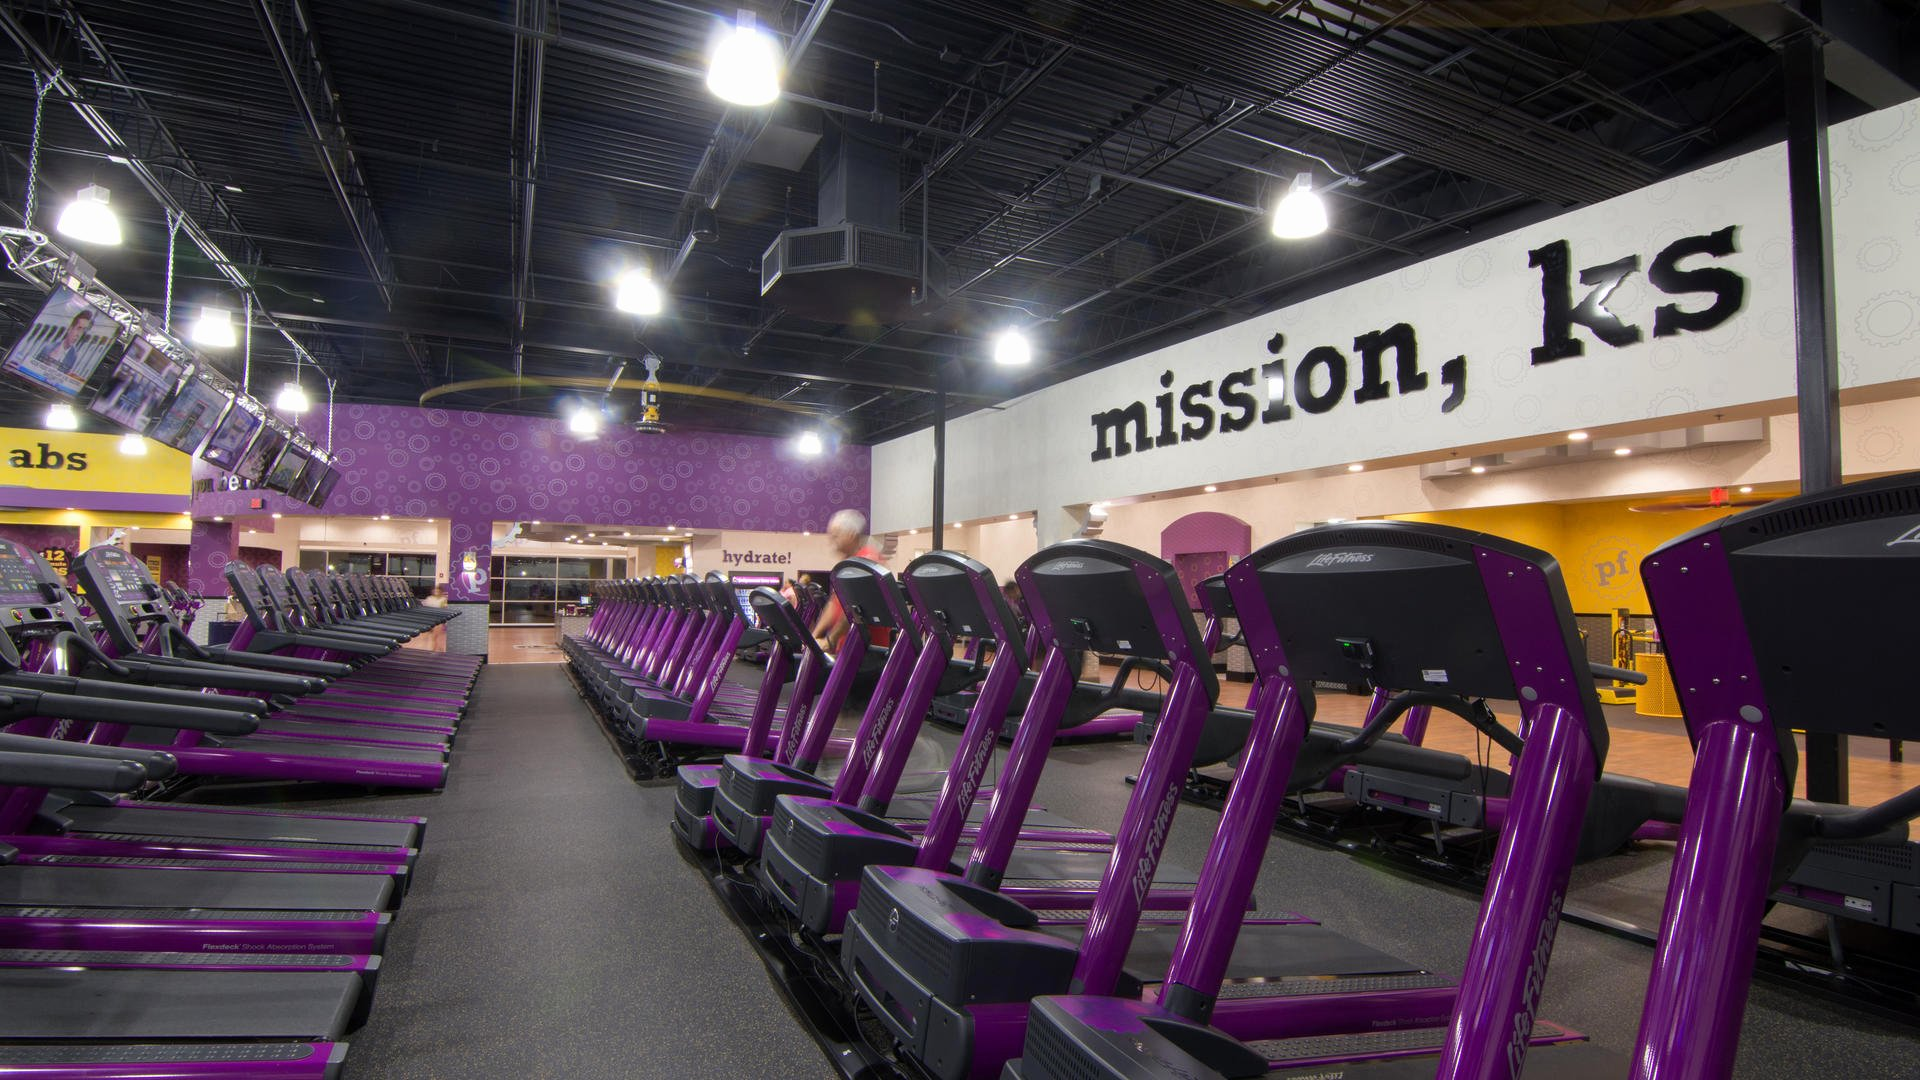 Lifetime athletic Mission Statement Beautiful Gym In Mission Ks 6765 Johnson Dr